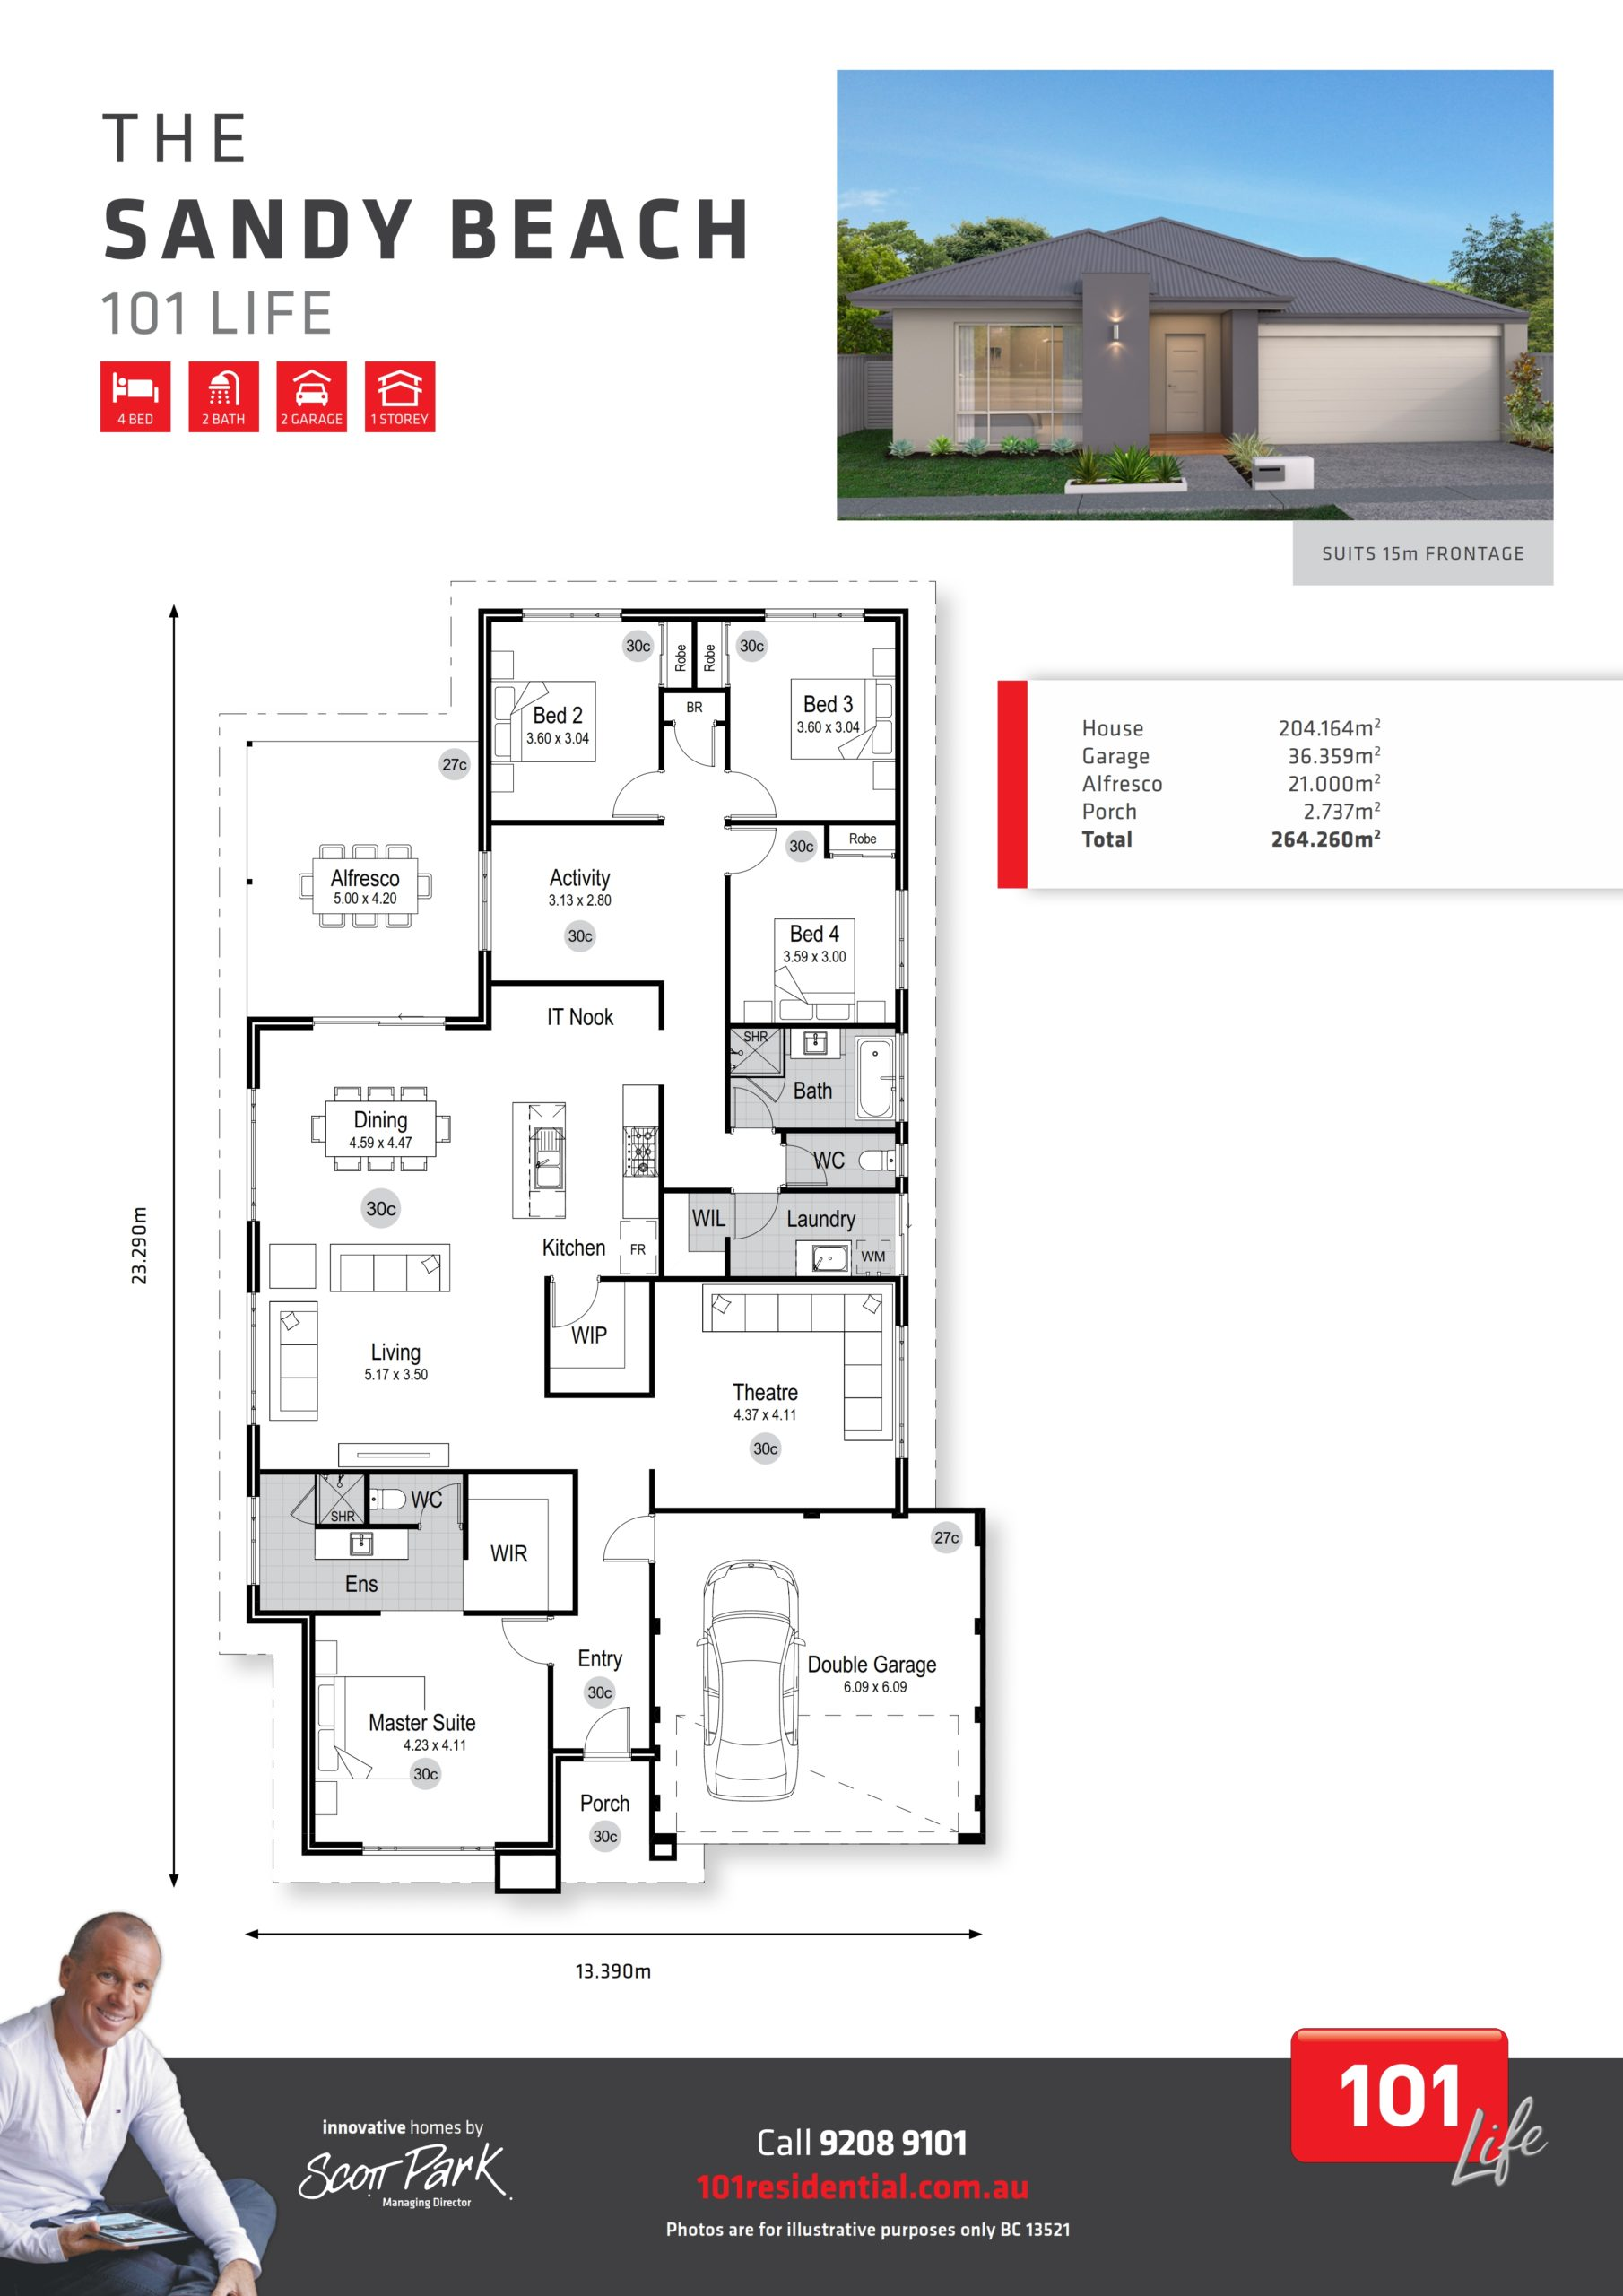 101 Life A3 Floor Plan - Sandy Beach WEB_001